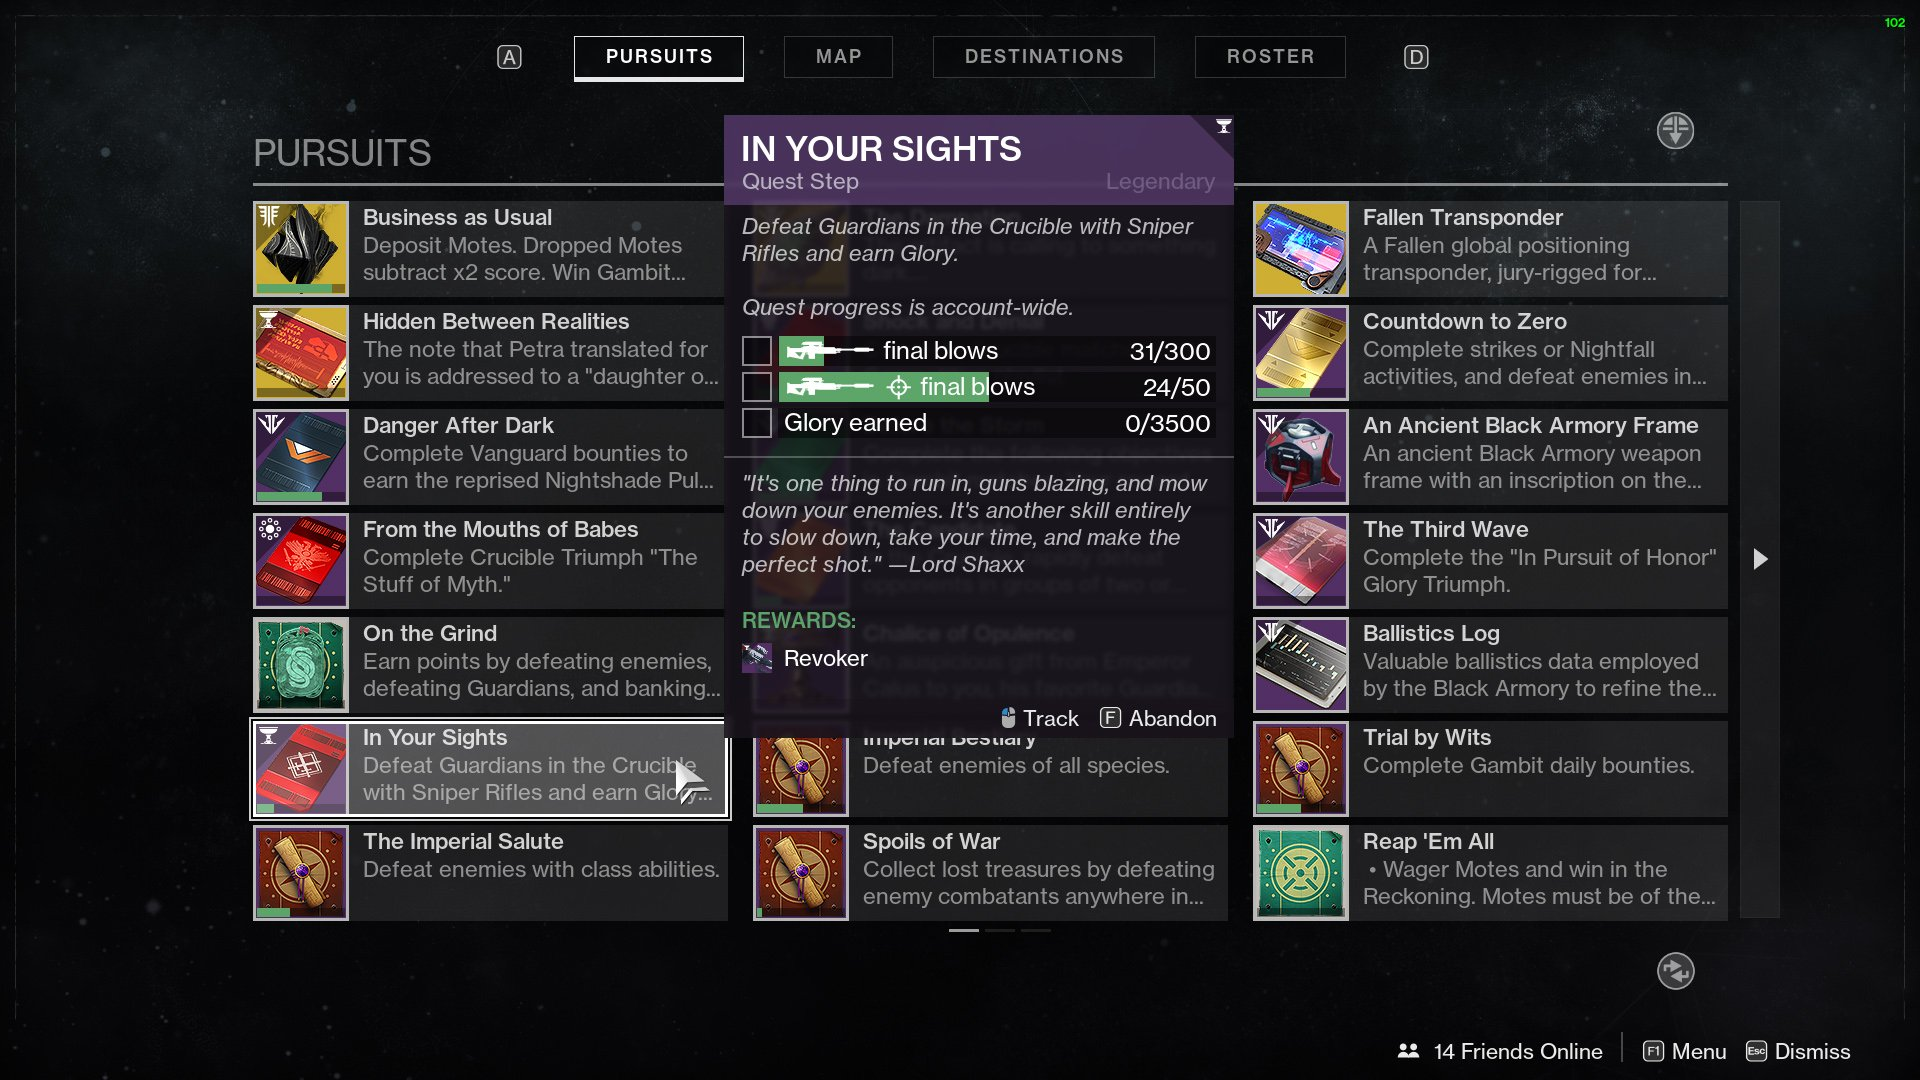 Destiny 2 Revoker In Your Sights